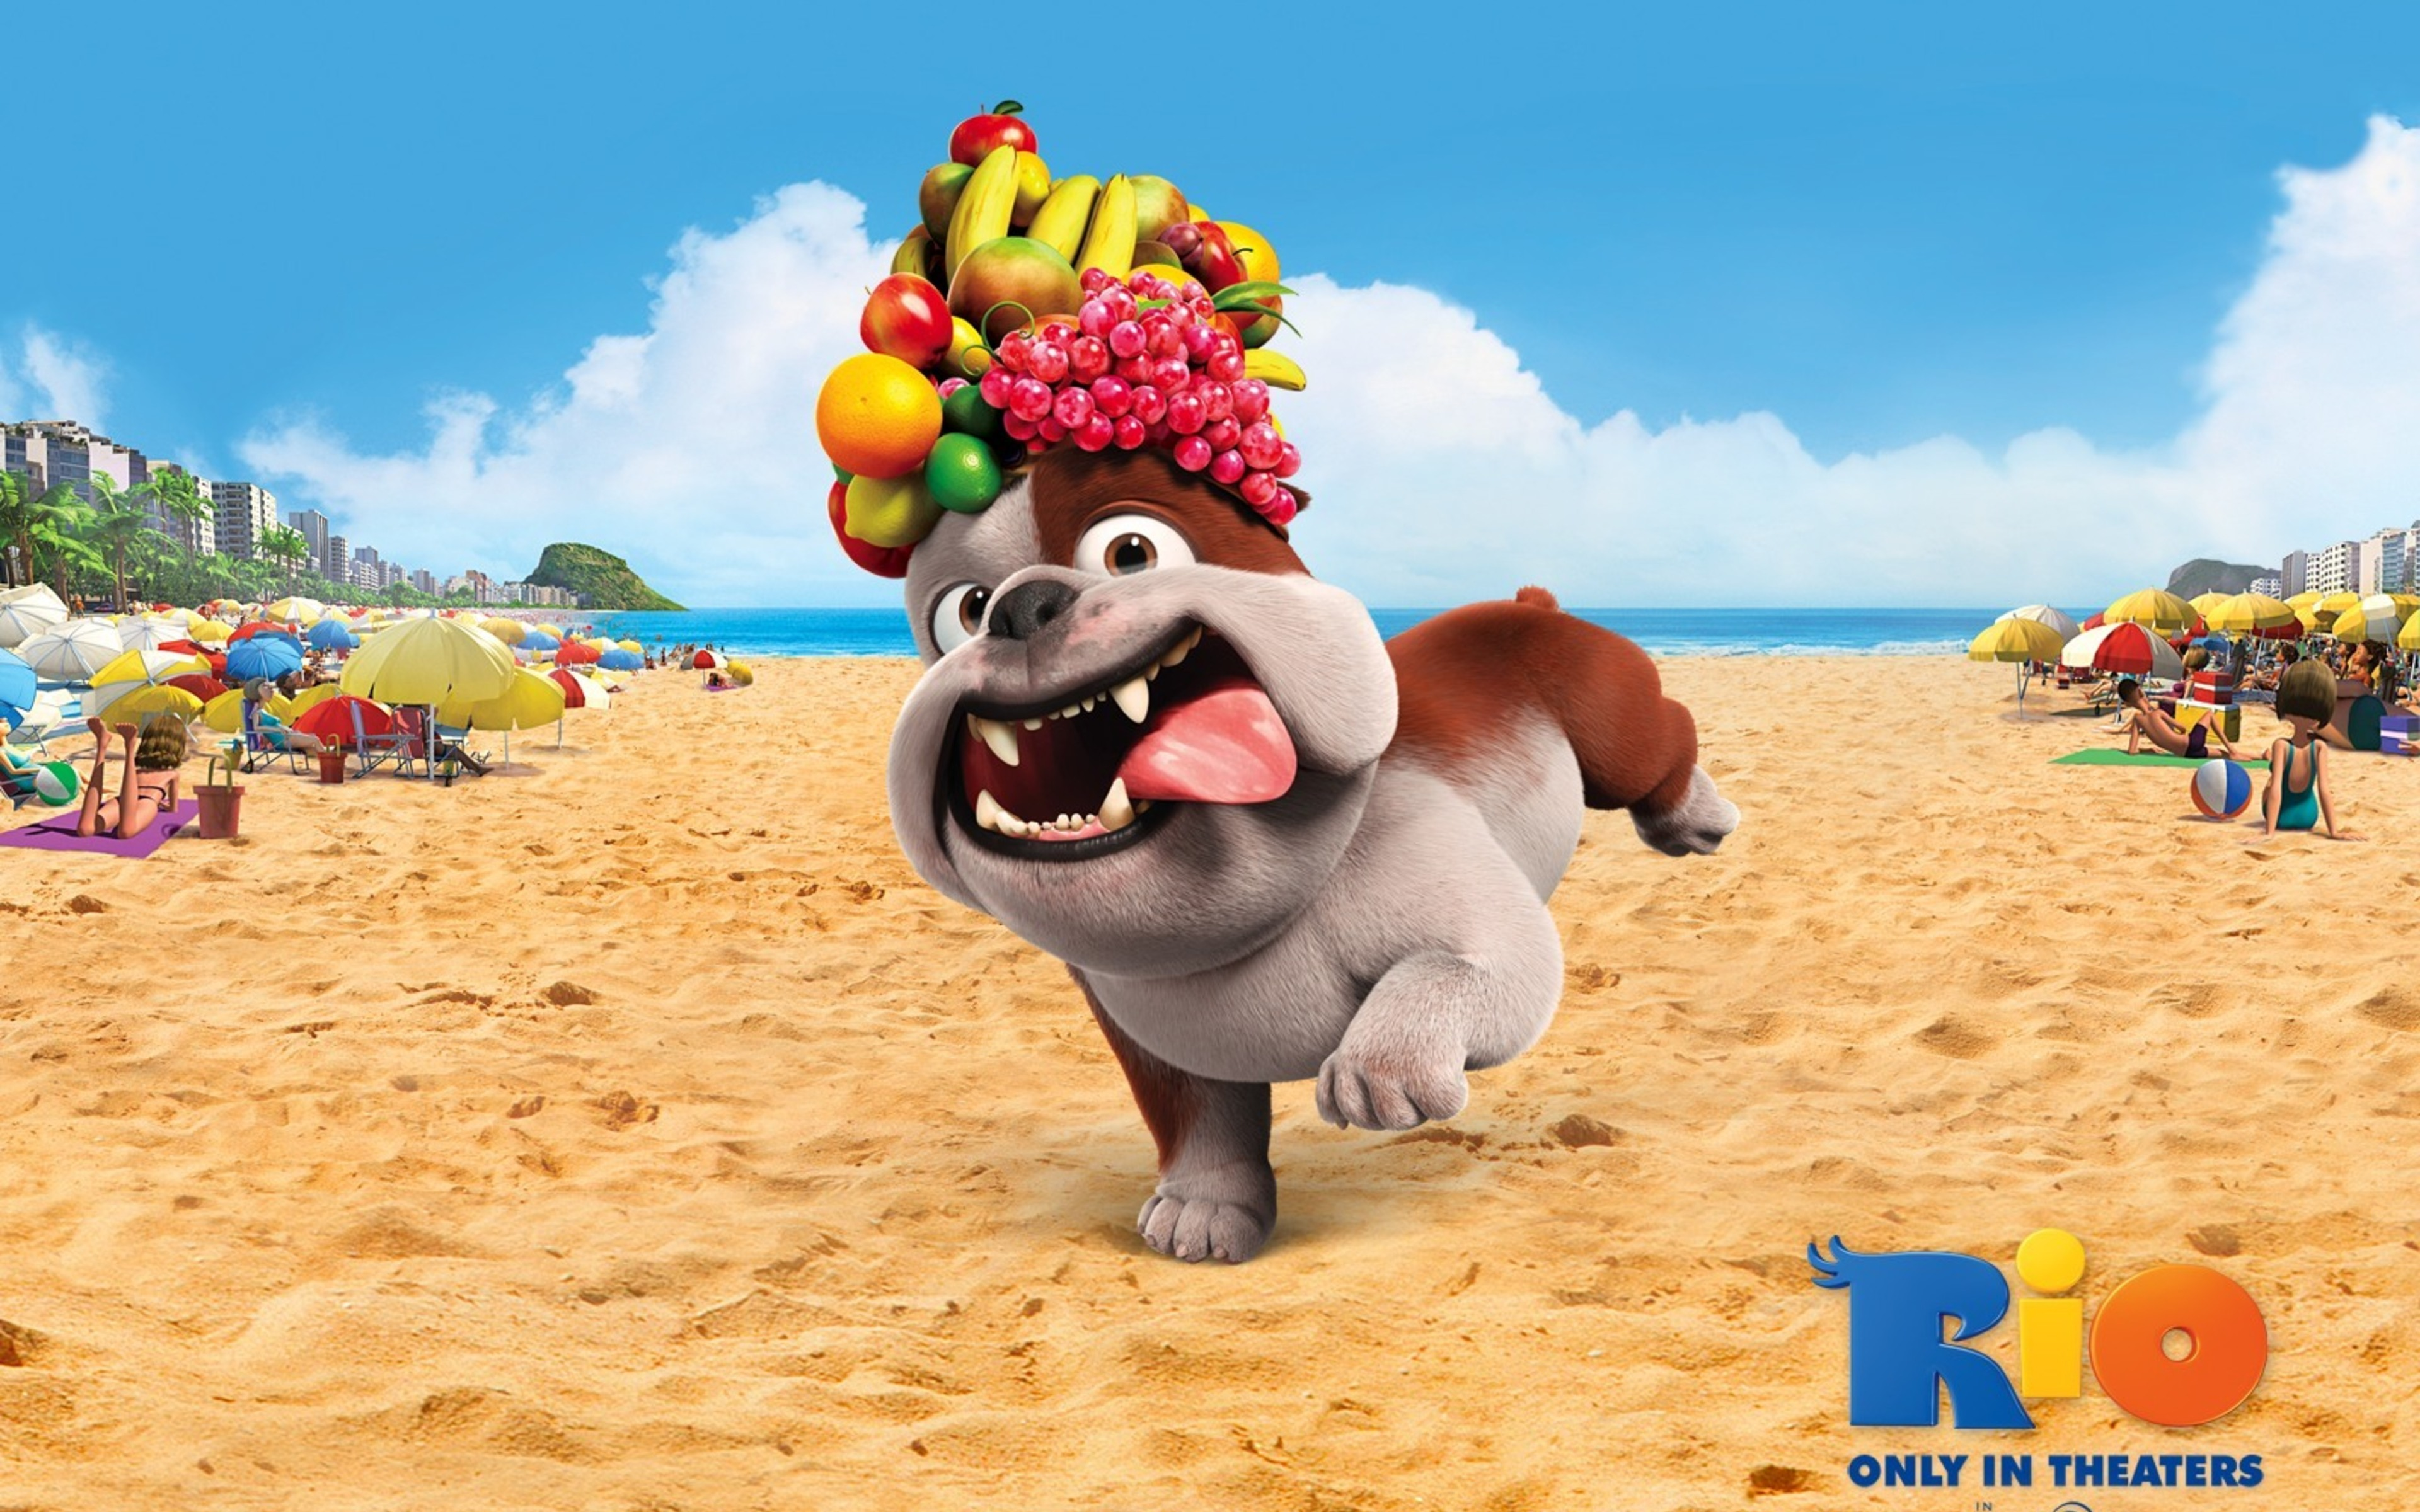 luiz-bulldog-in-rio-movie.jpg